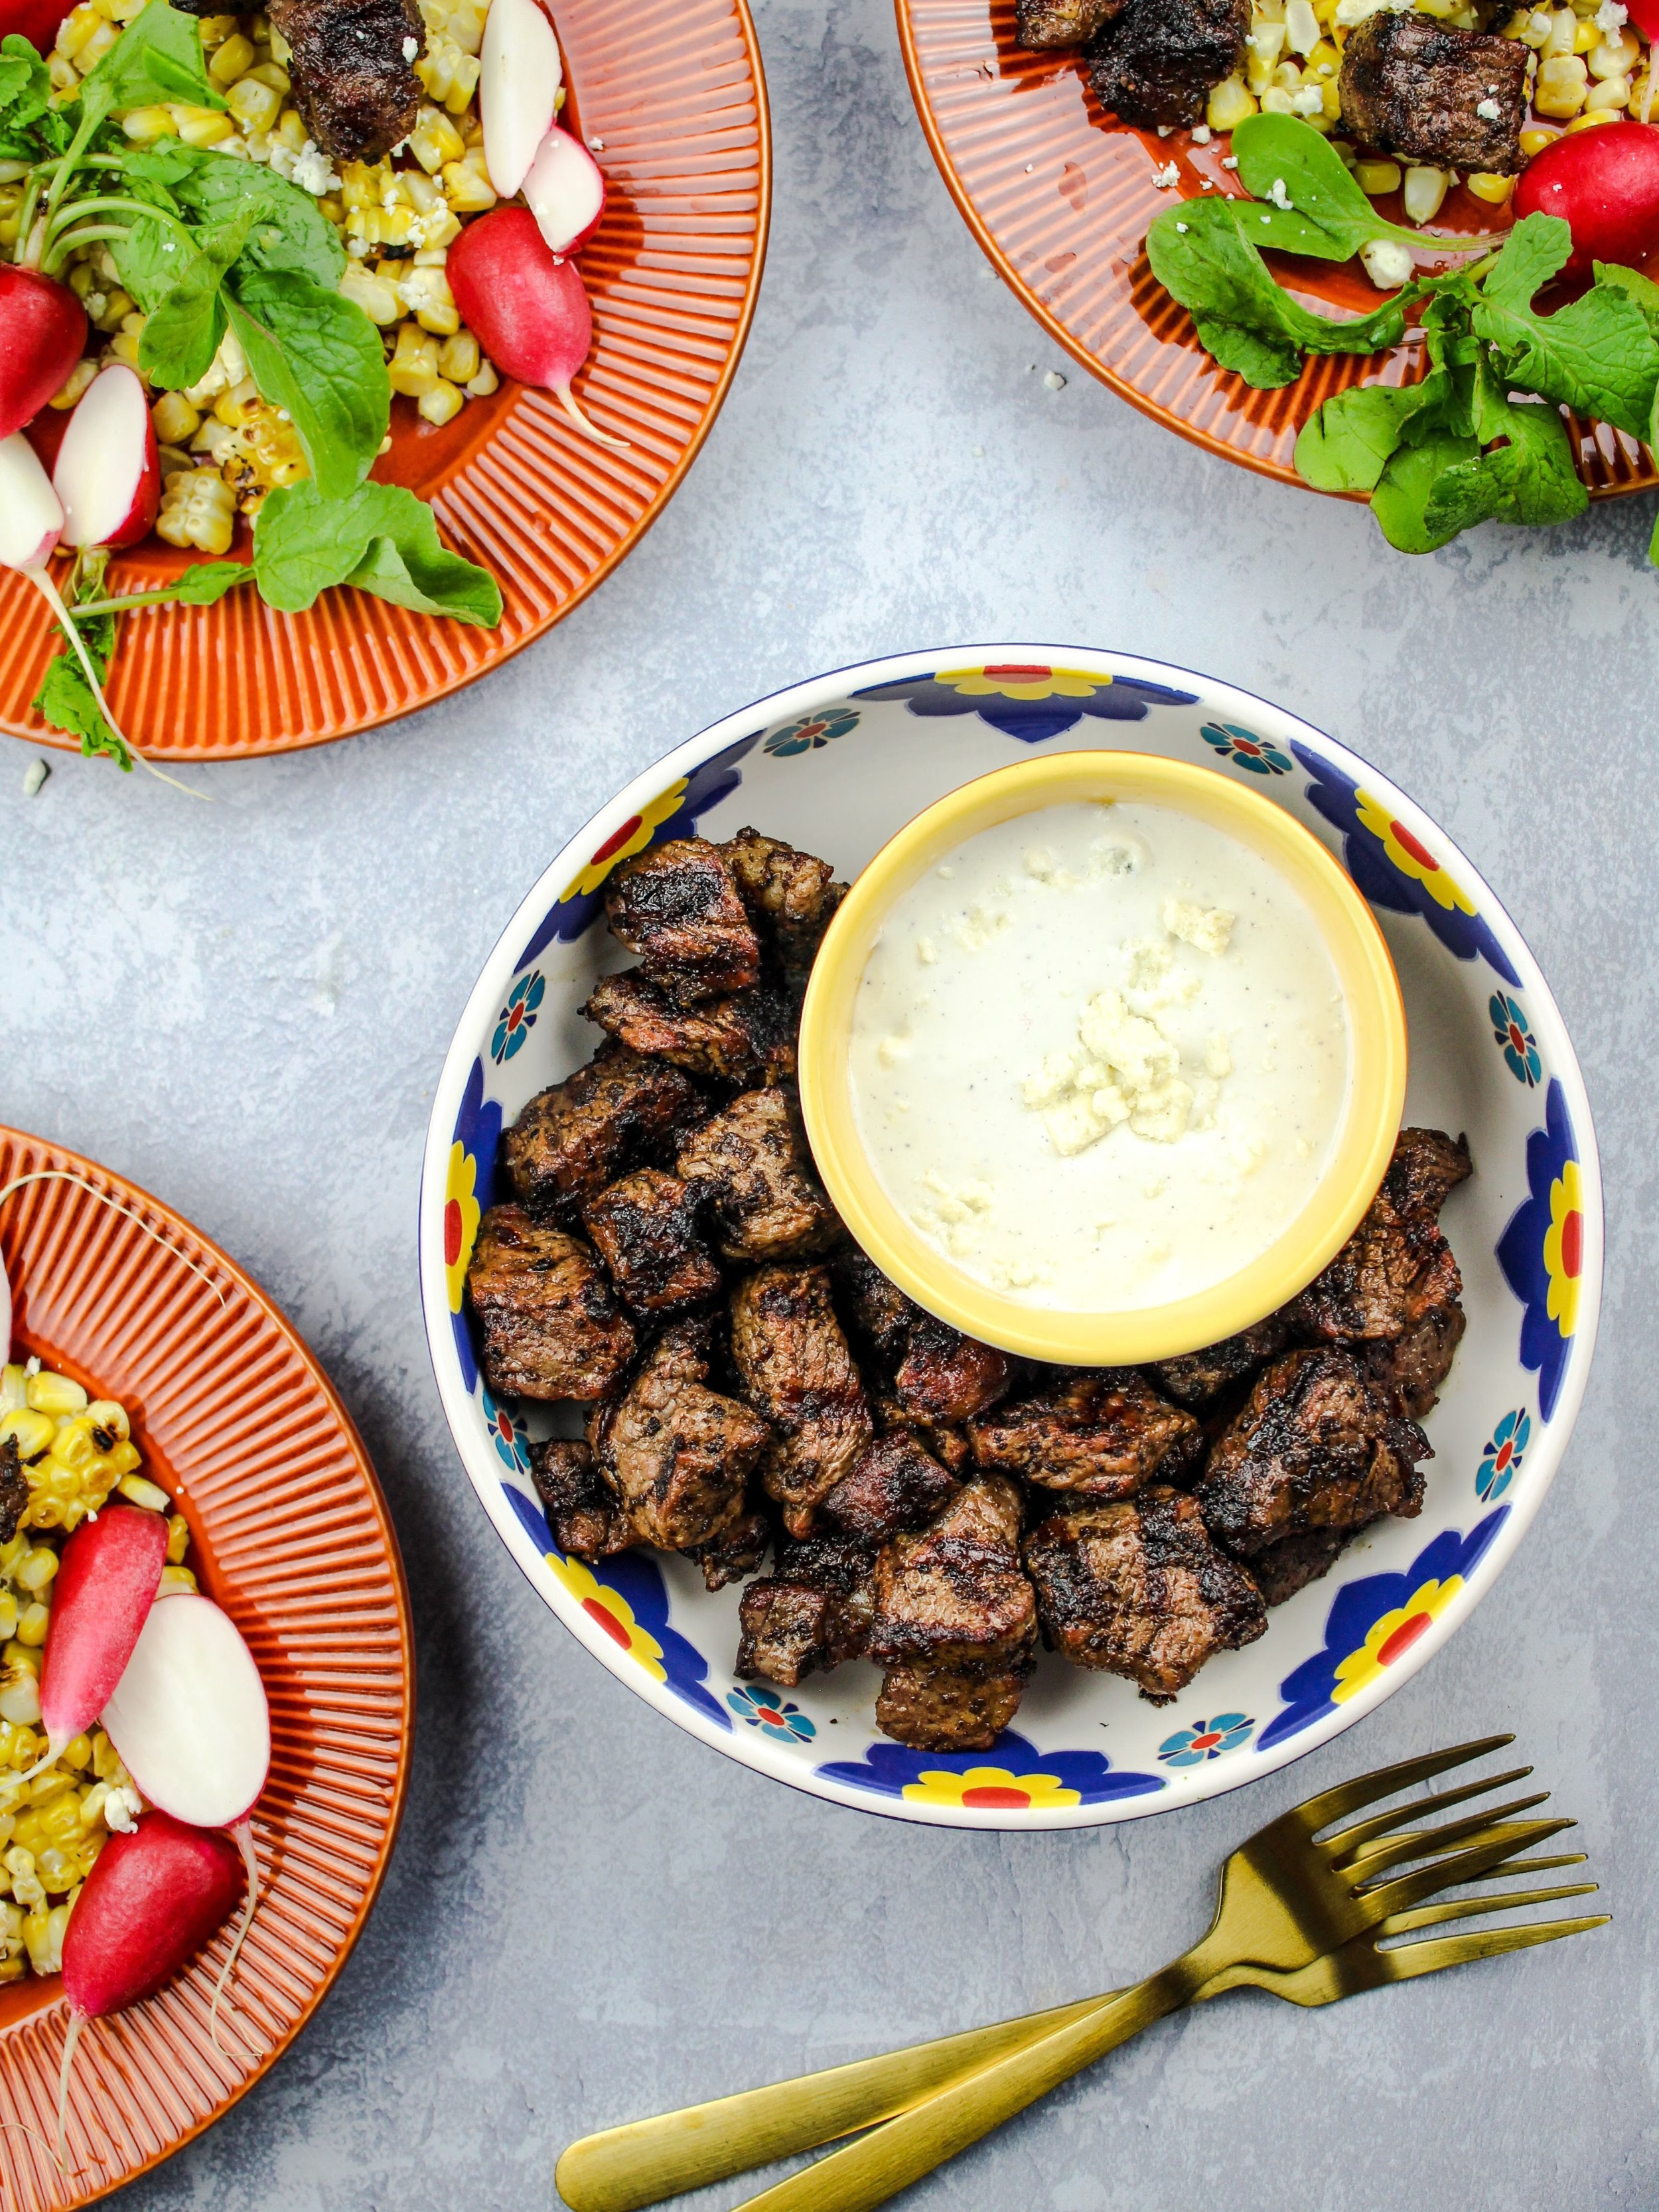 Grilled Steak bites with truffle butter and gorgonzola cheese